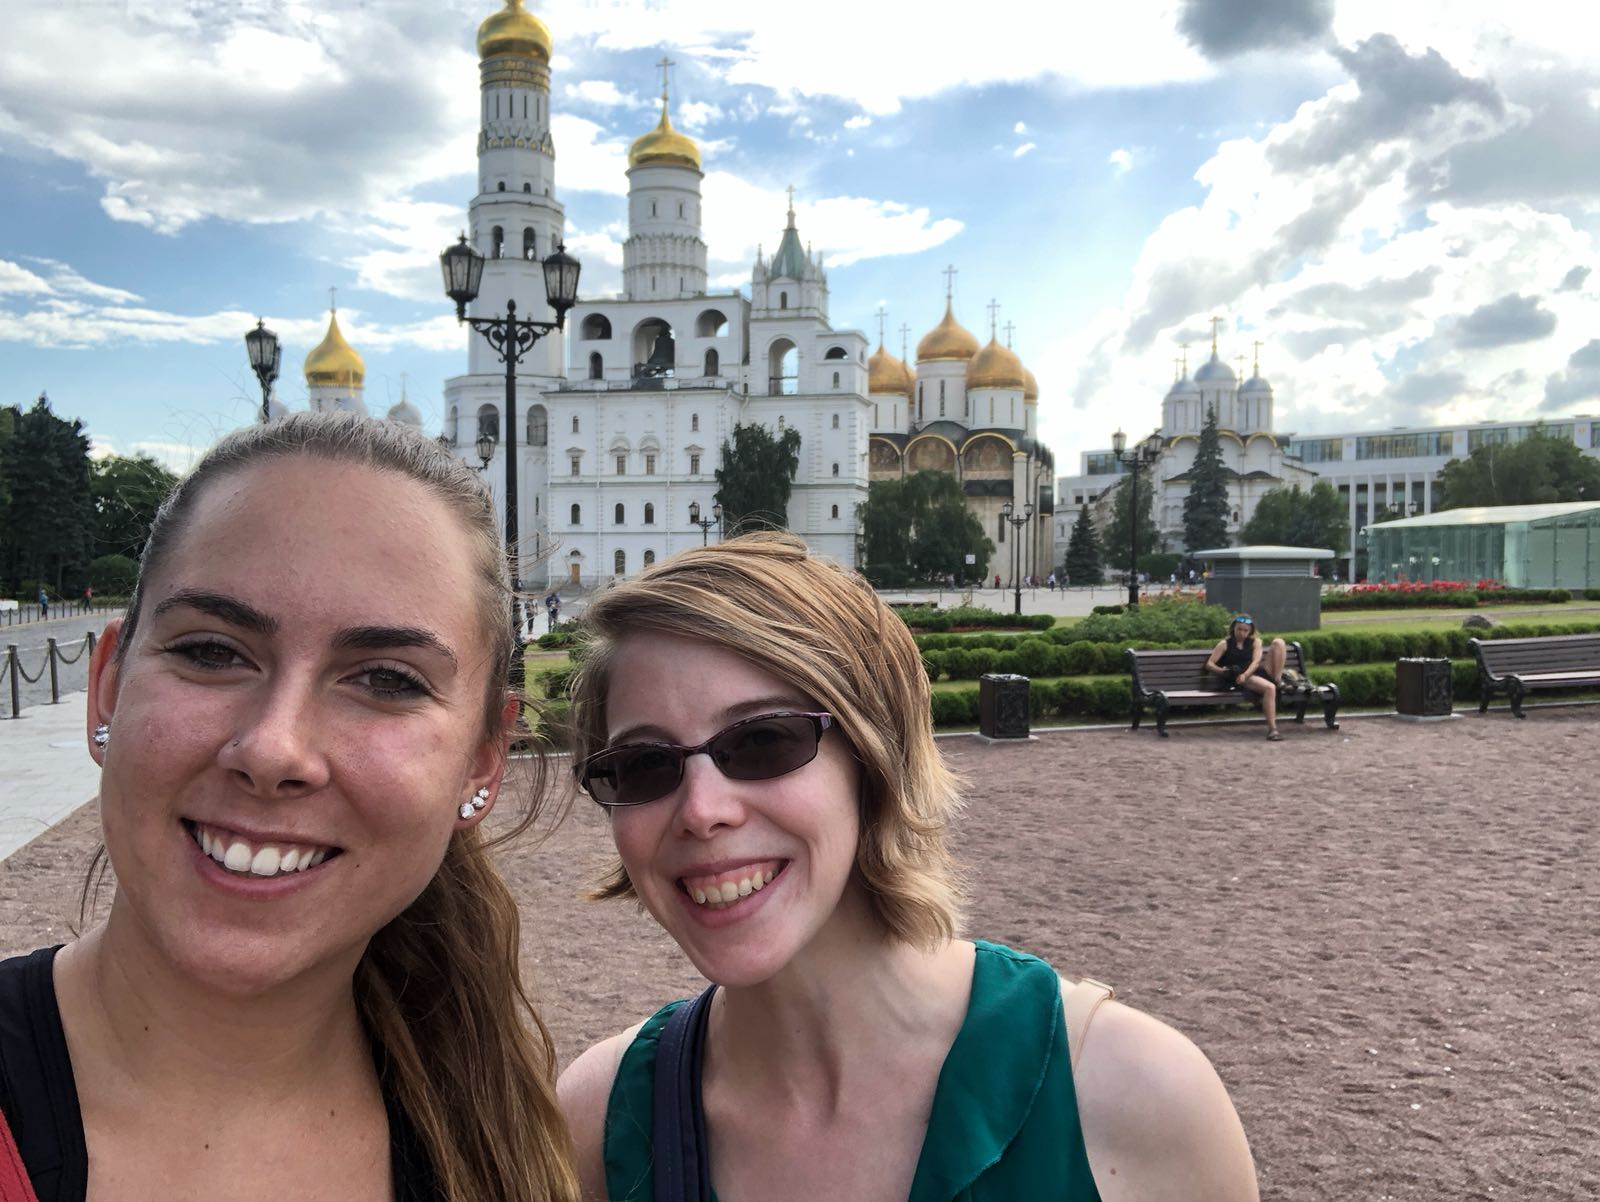 Ms. Williams and one of her younger peers, smiling in front of a cathedral in Russia